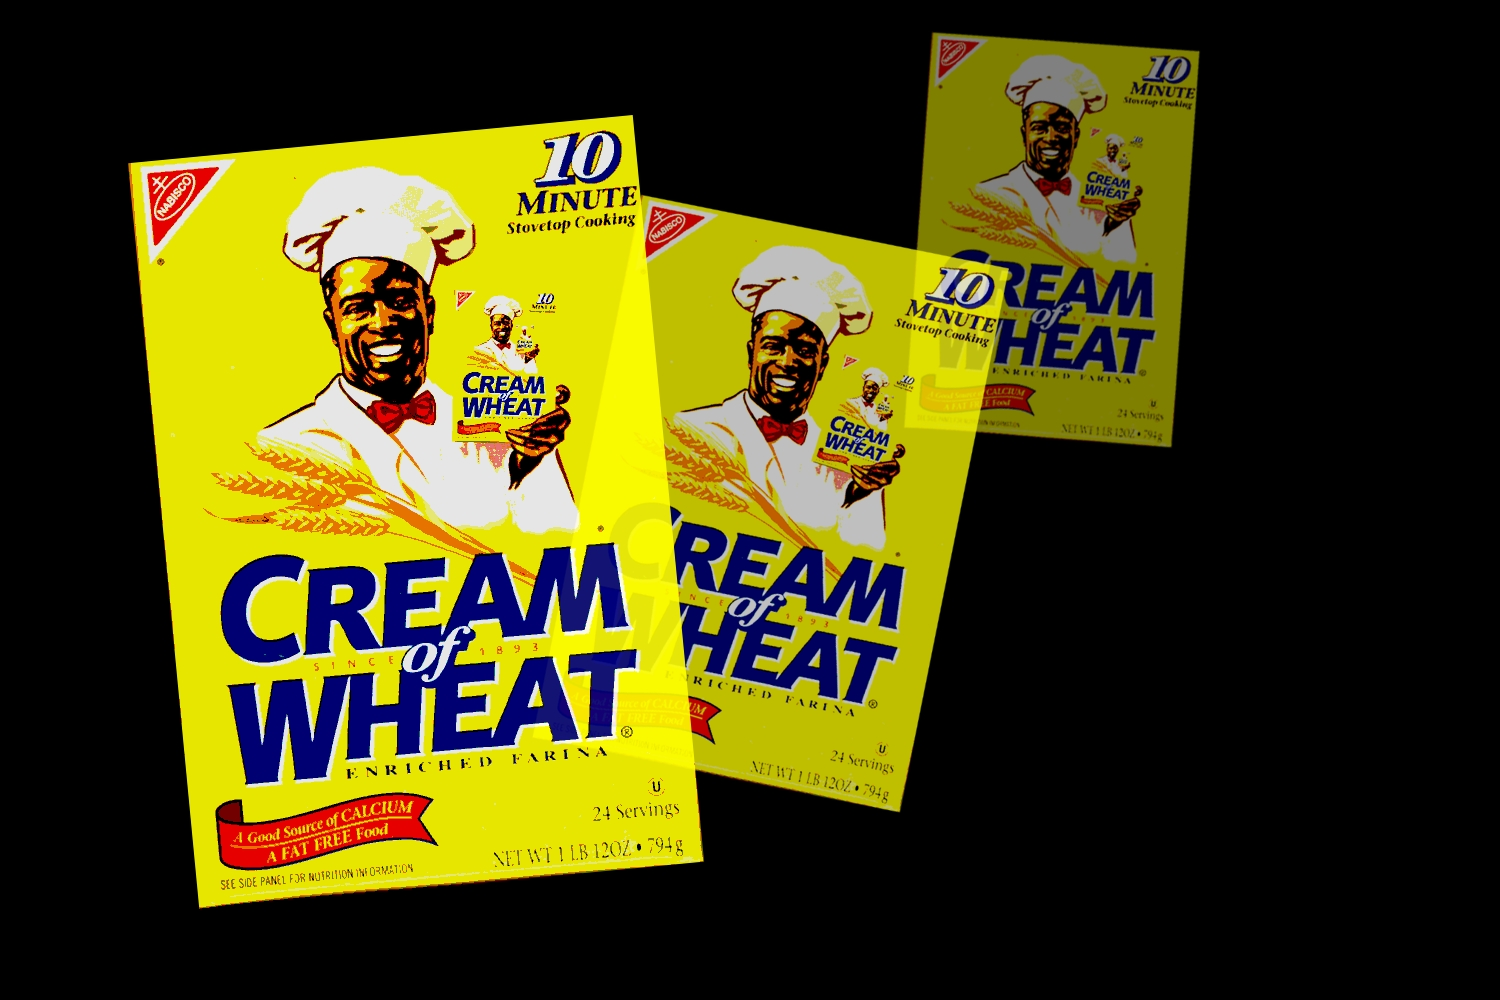 2-Cream_of_Wheat